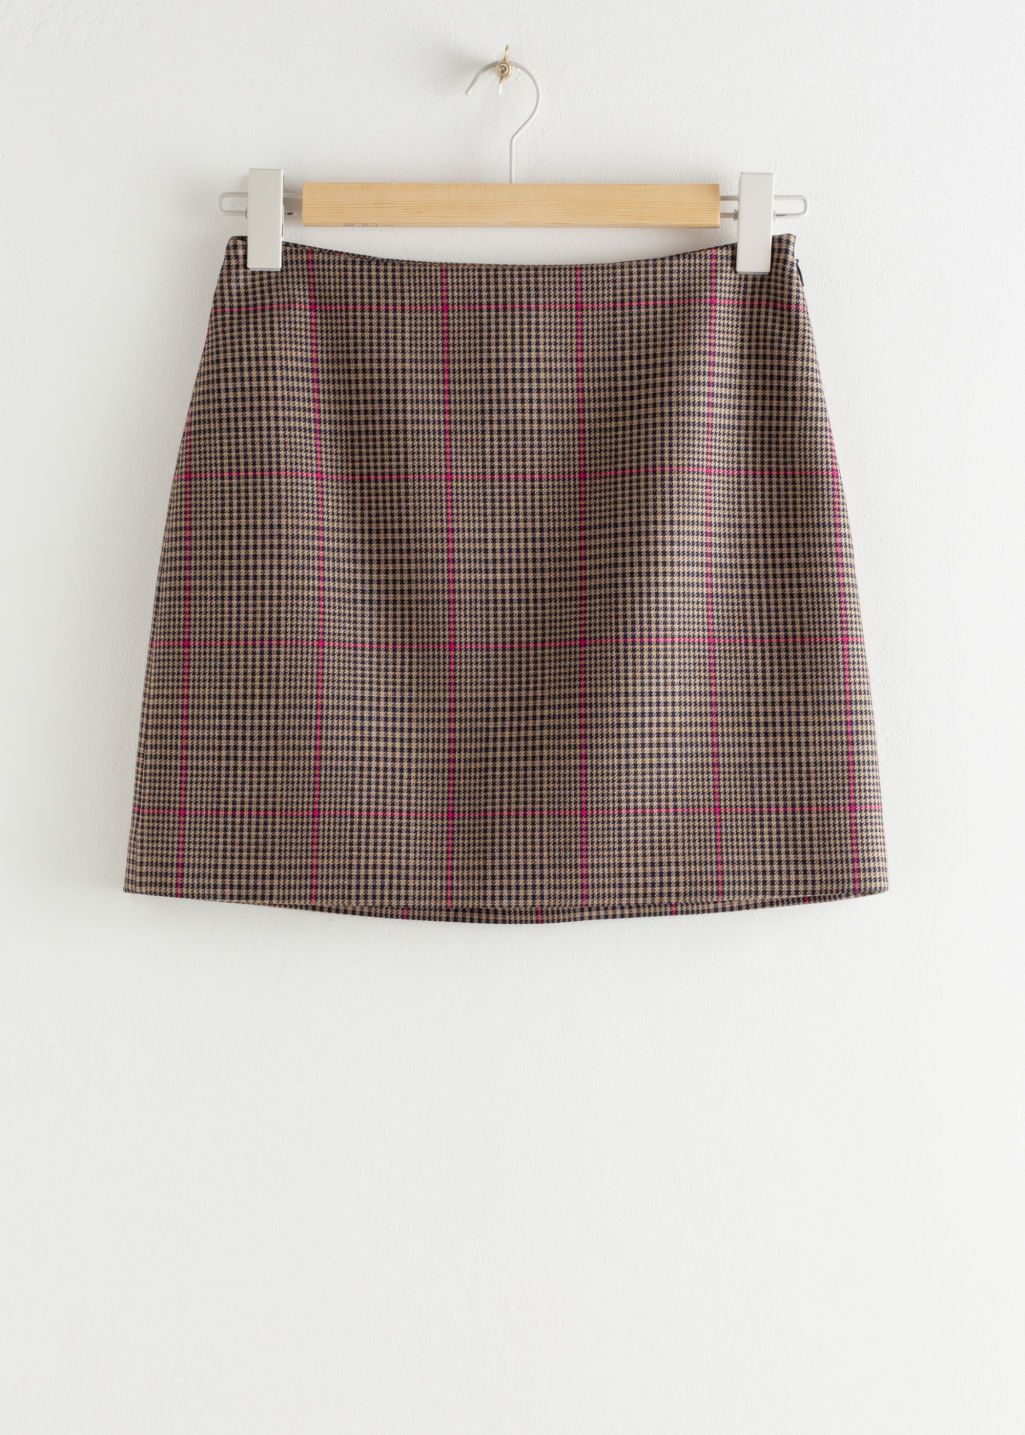 & Other Stories Brown Plaid Check Mini Skirt